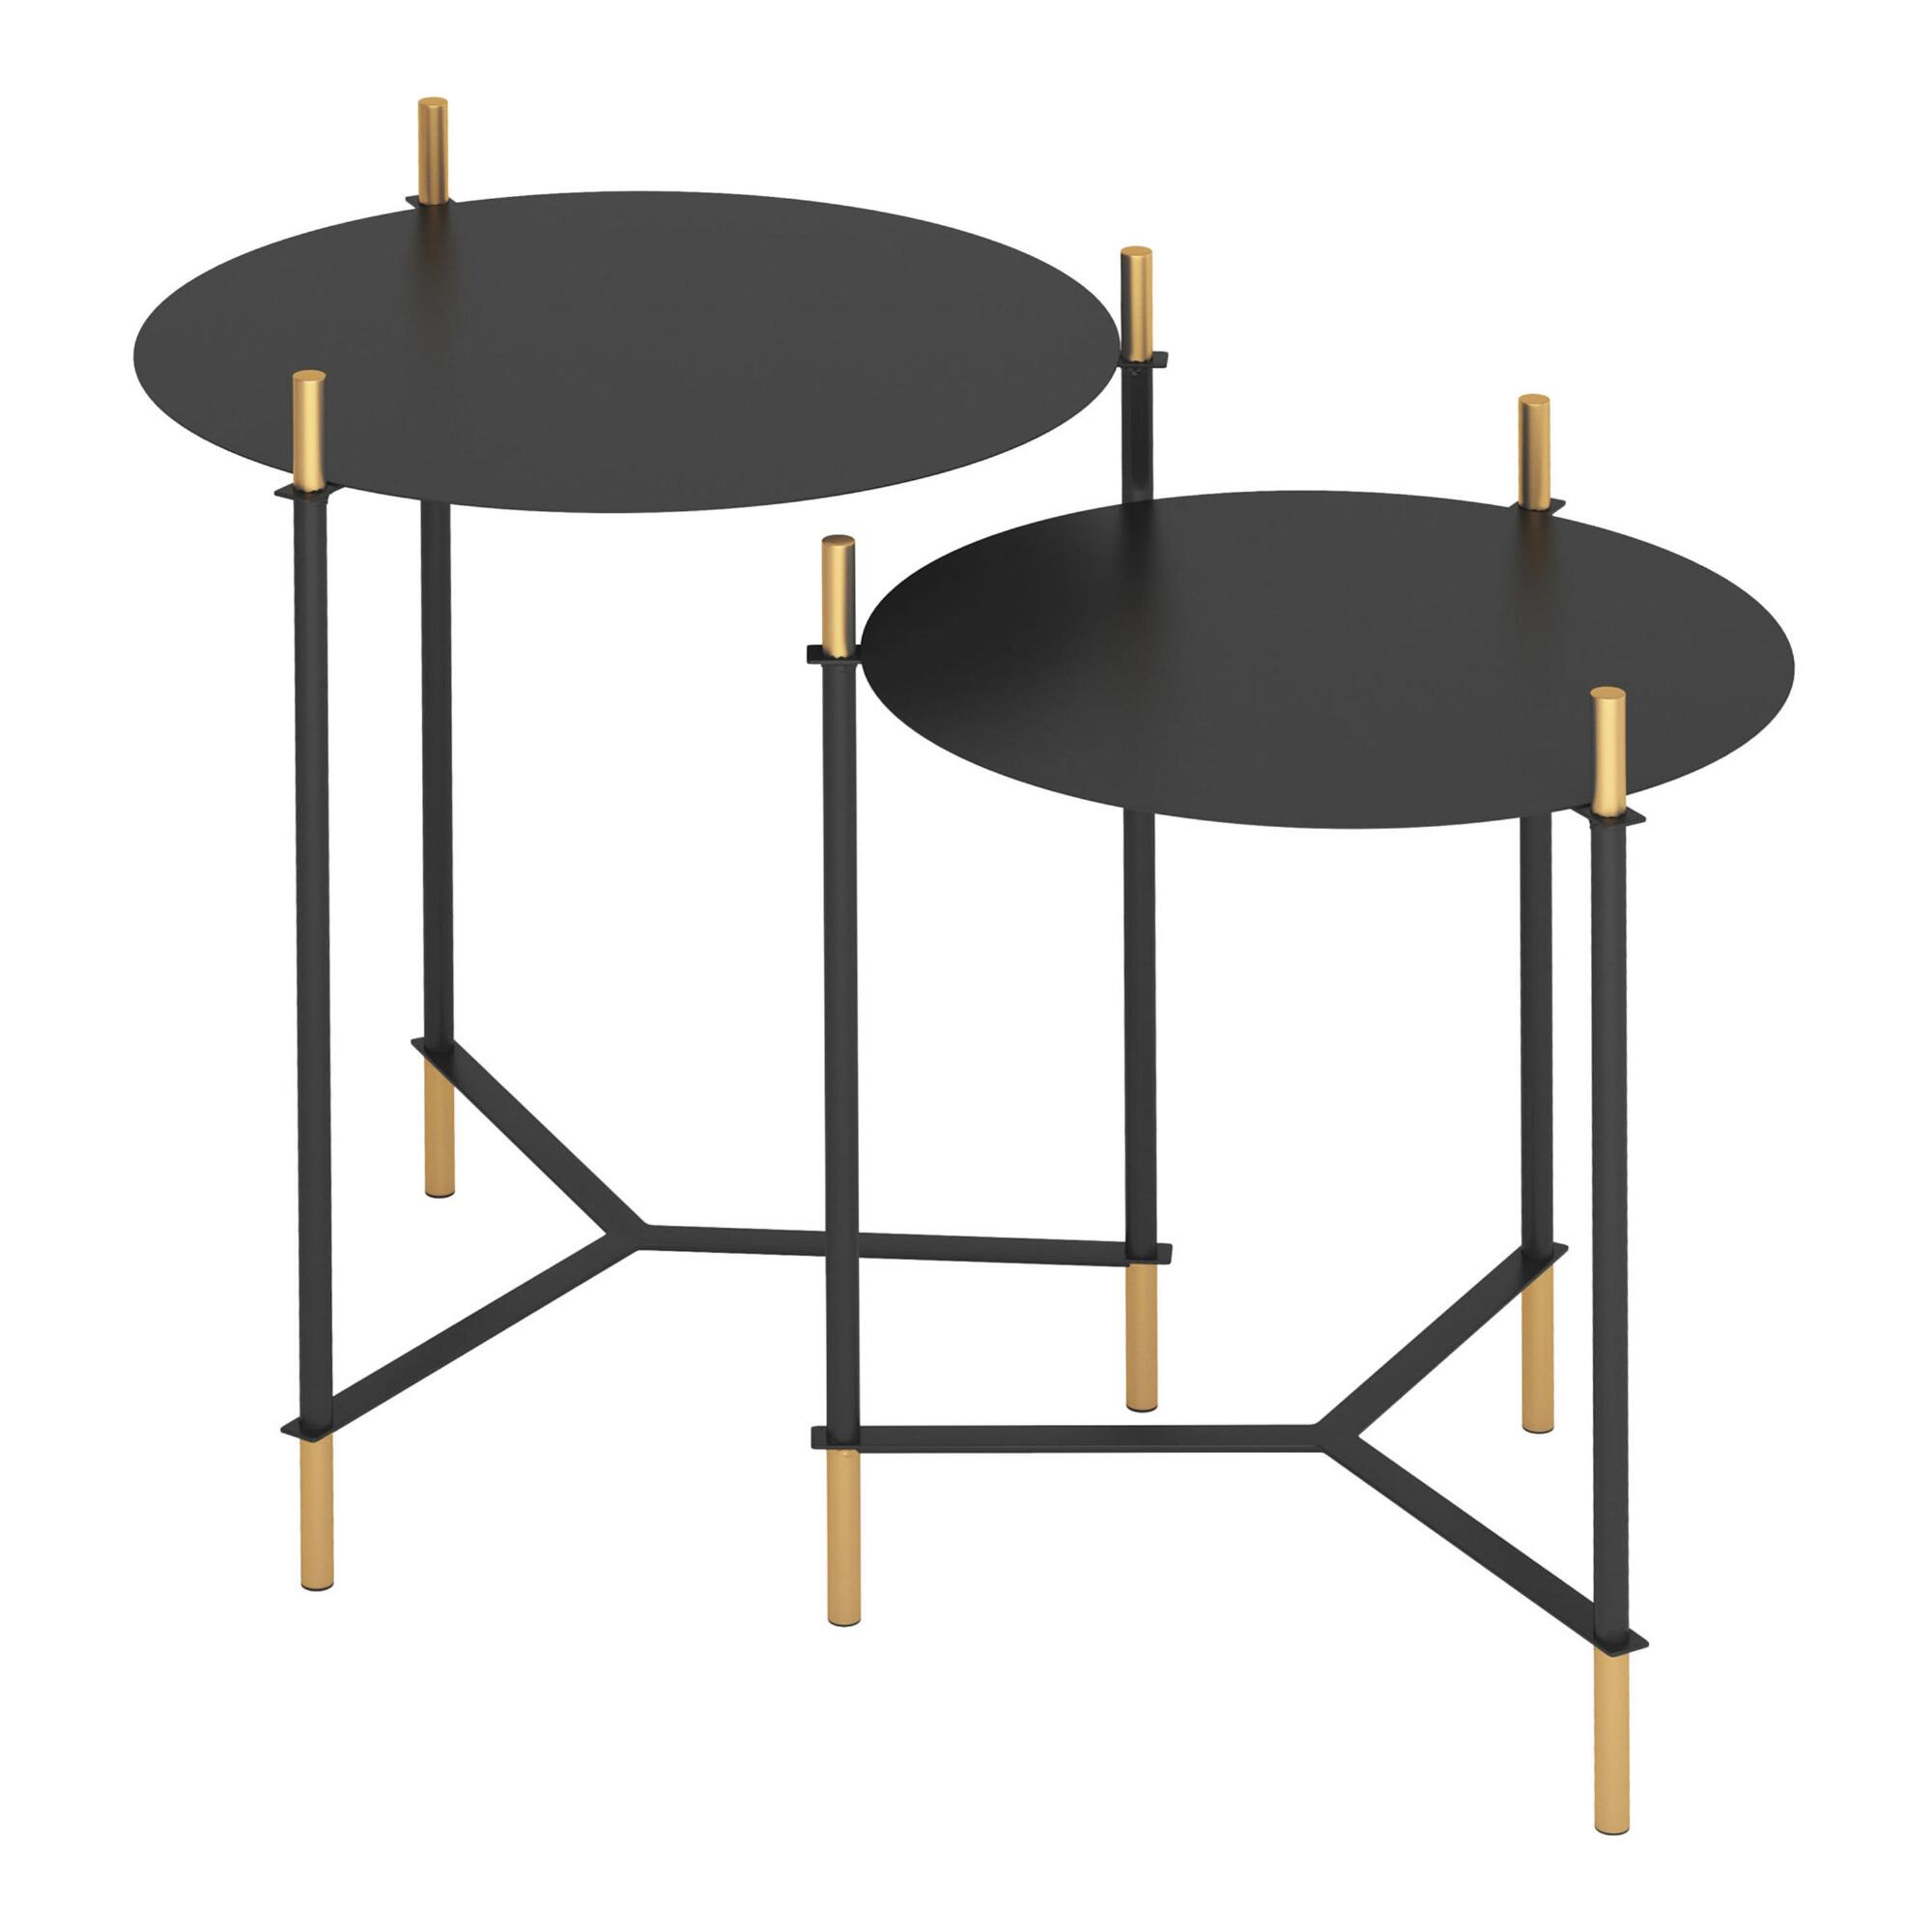 Round Black And Gold Buena Vista Accent Tables Set Of 2 $279.99